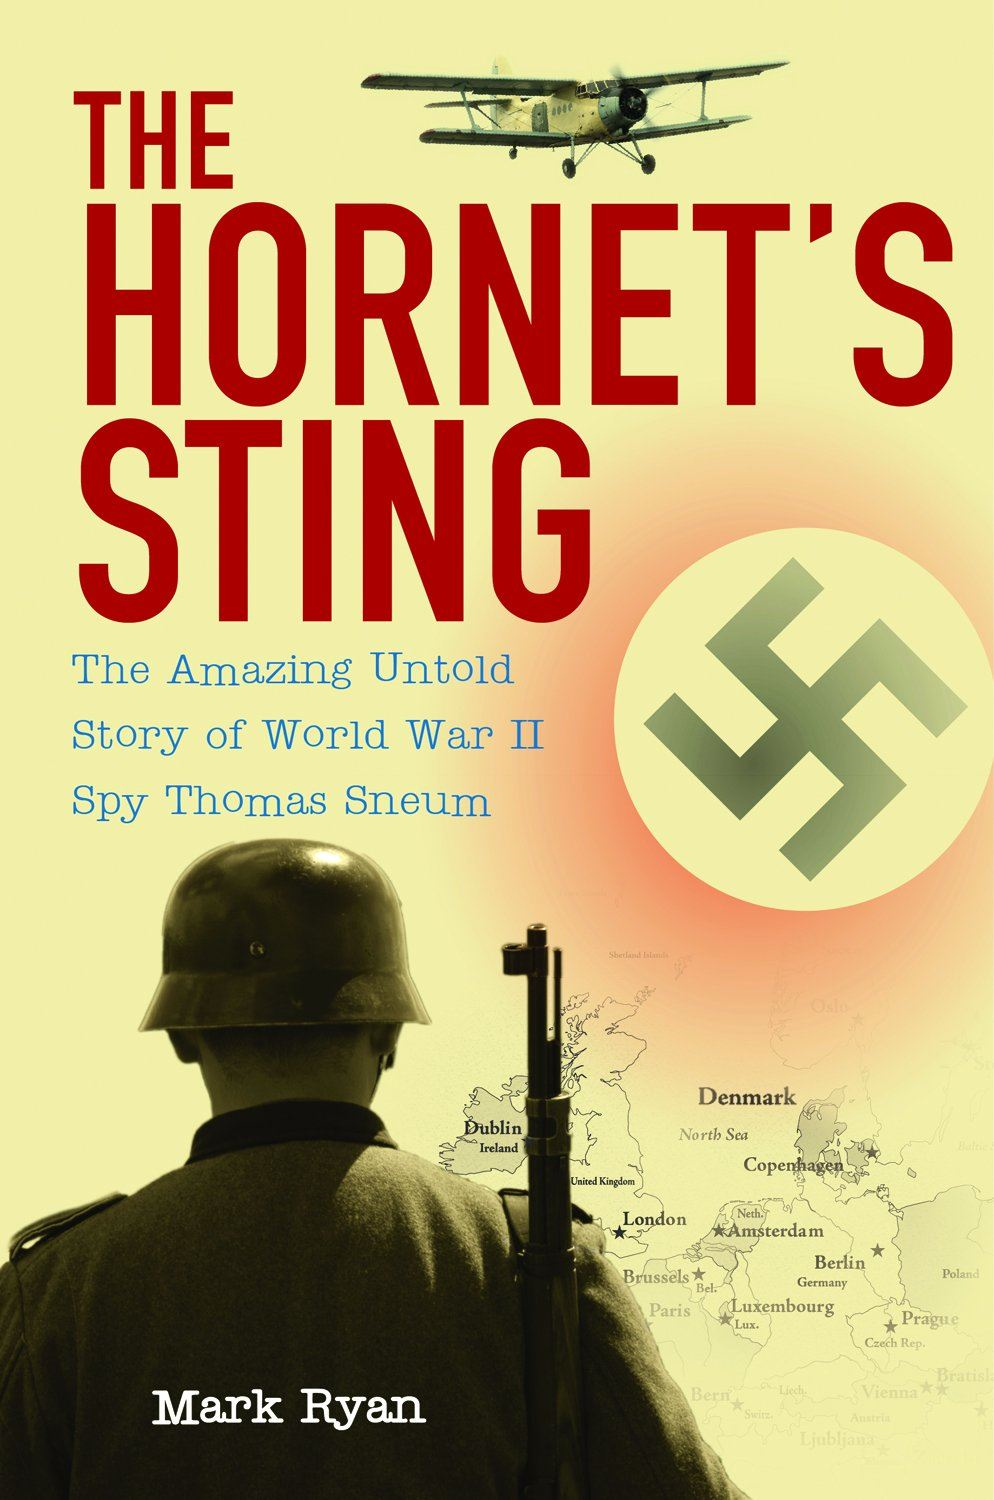 The Hornet's Sting: The Amazing Untold Story of World War II Spy Thomas Sneum By: Mark Ryan